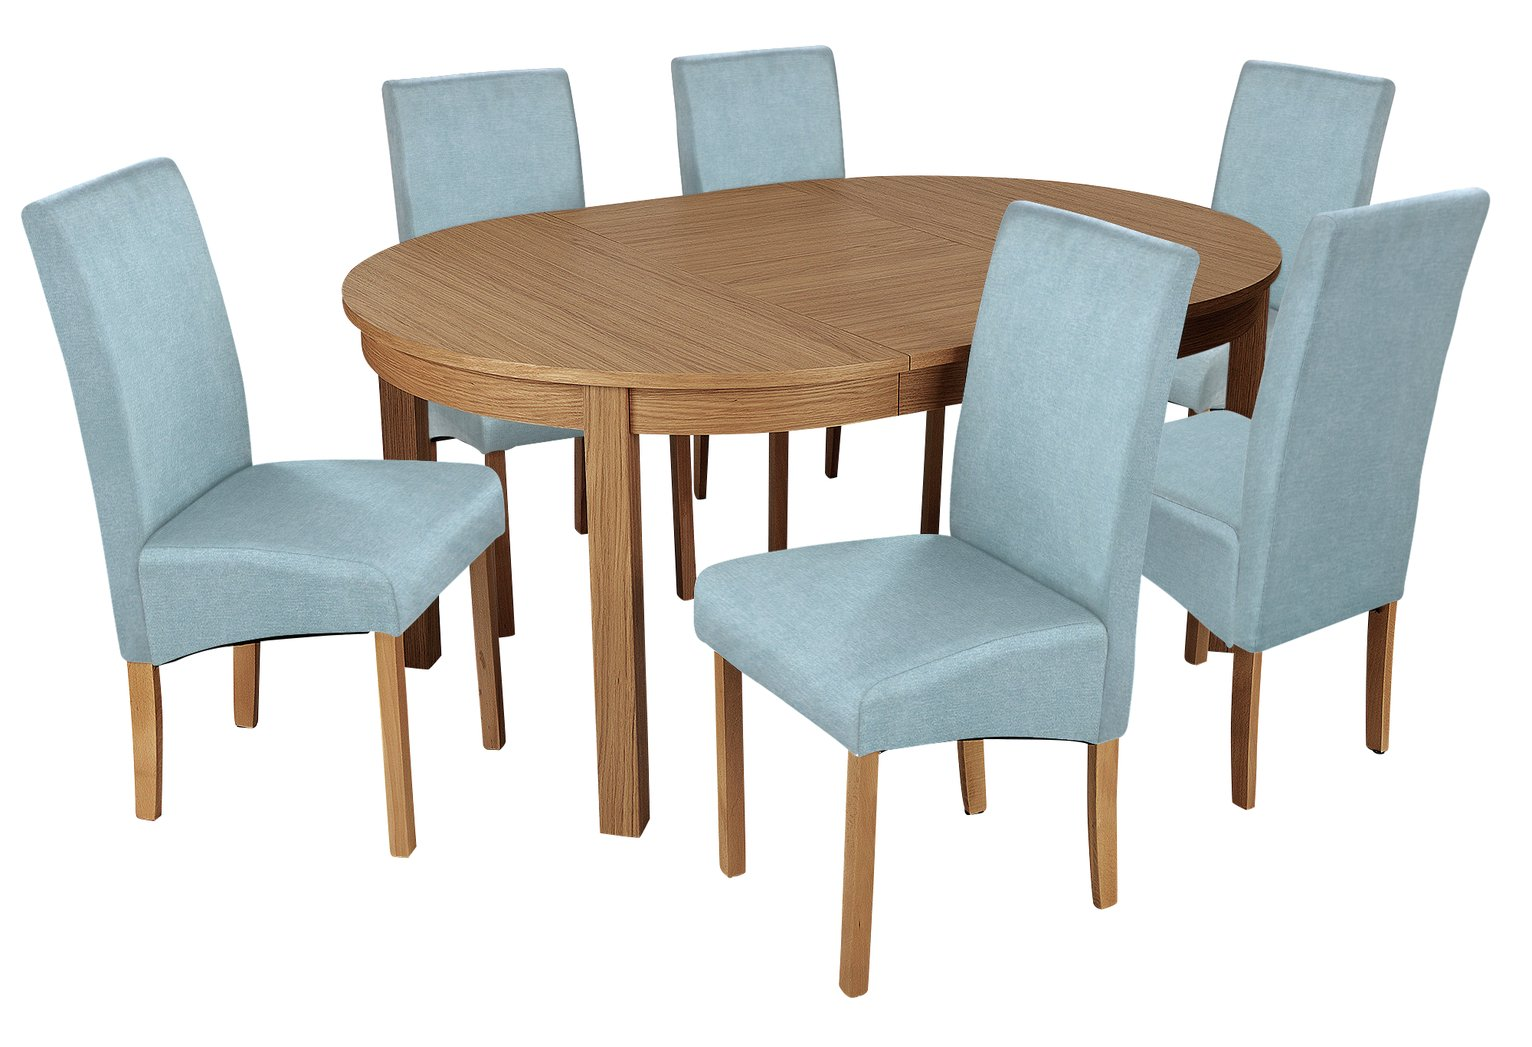 Argos Home Clifton Extendable Table & 6 Chairs - Duck Egg